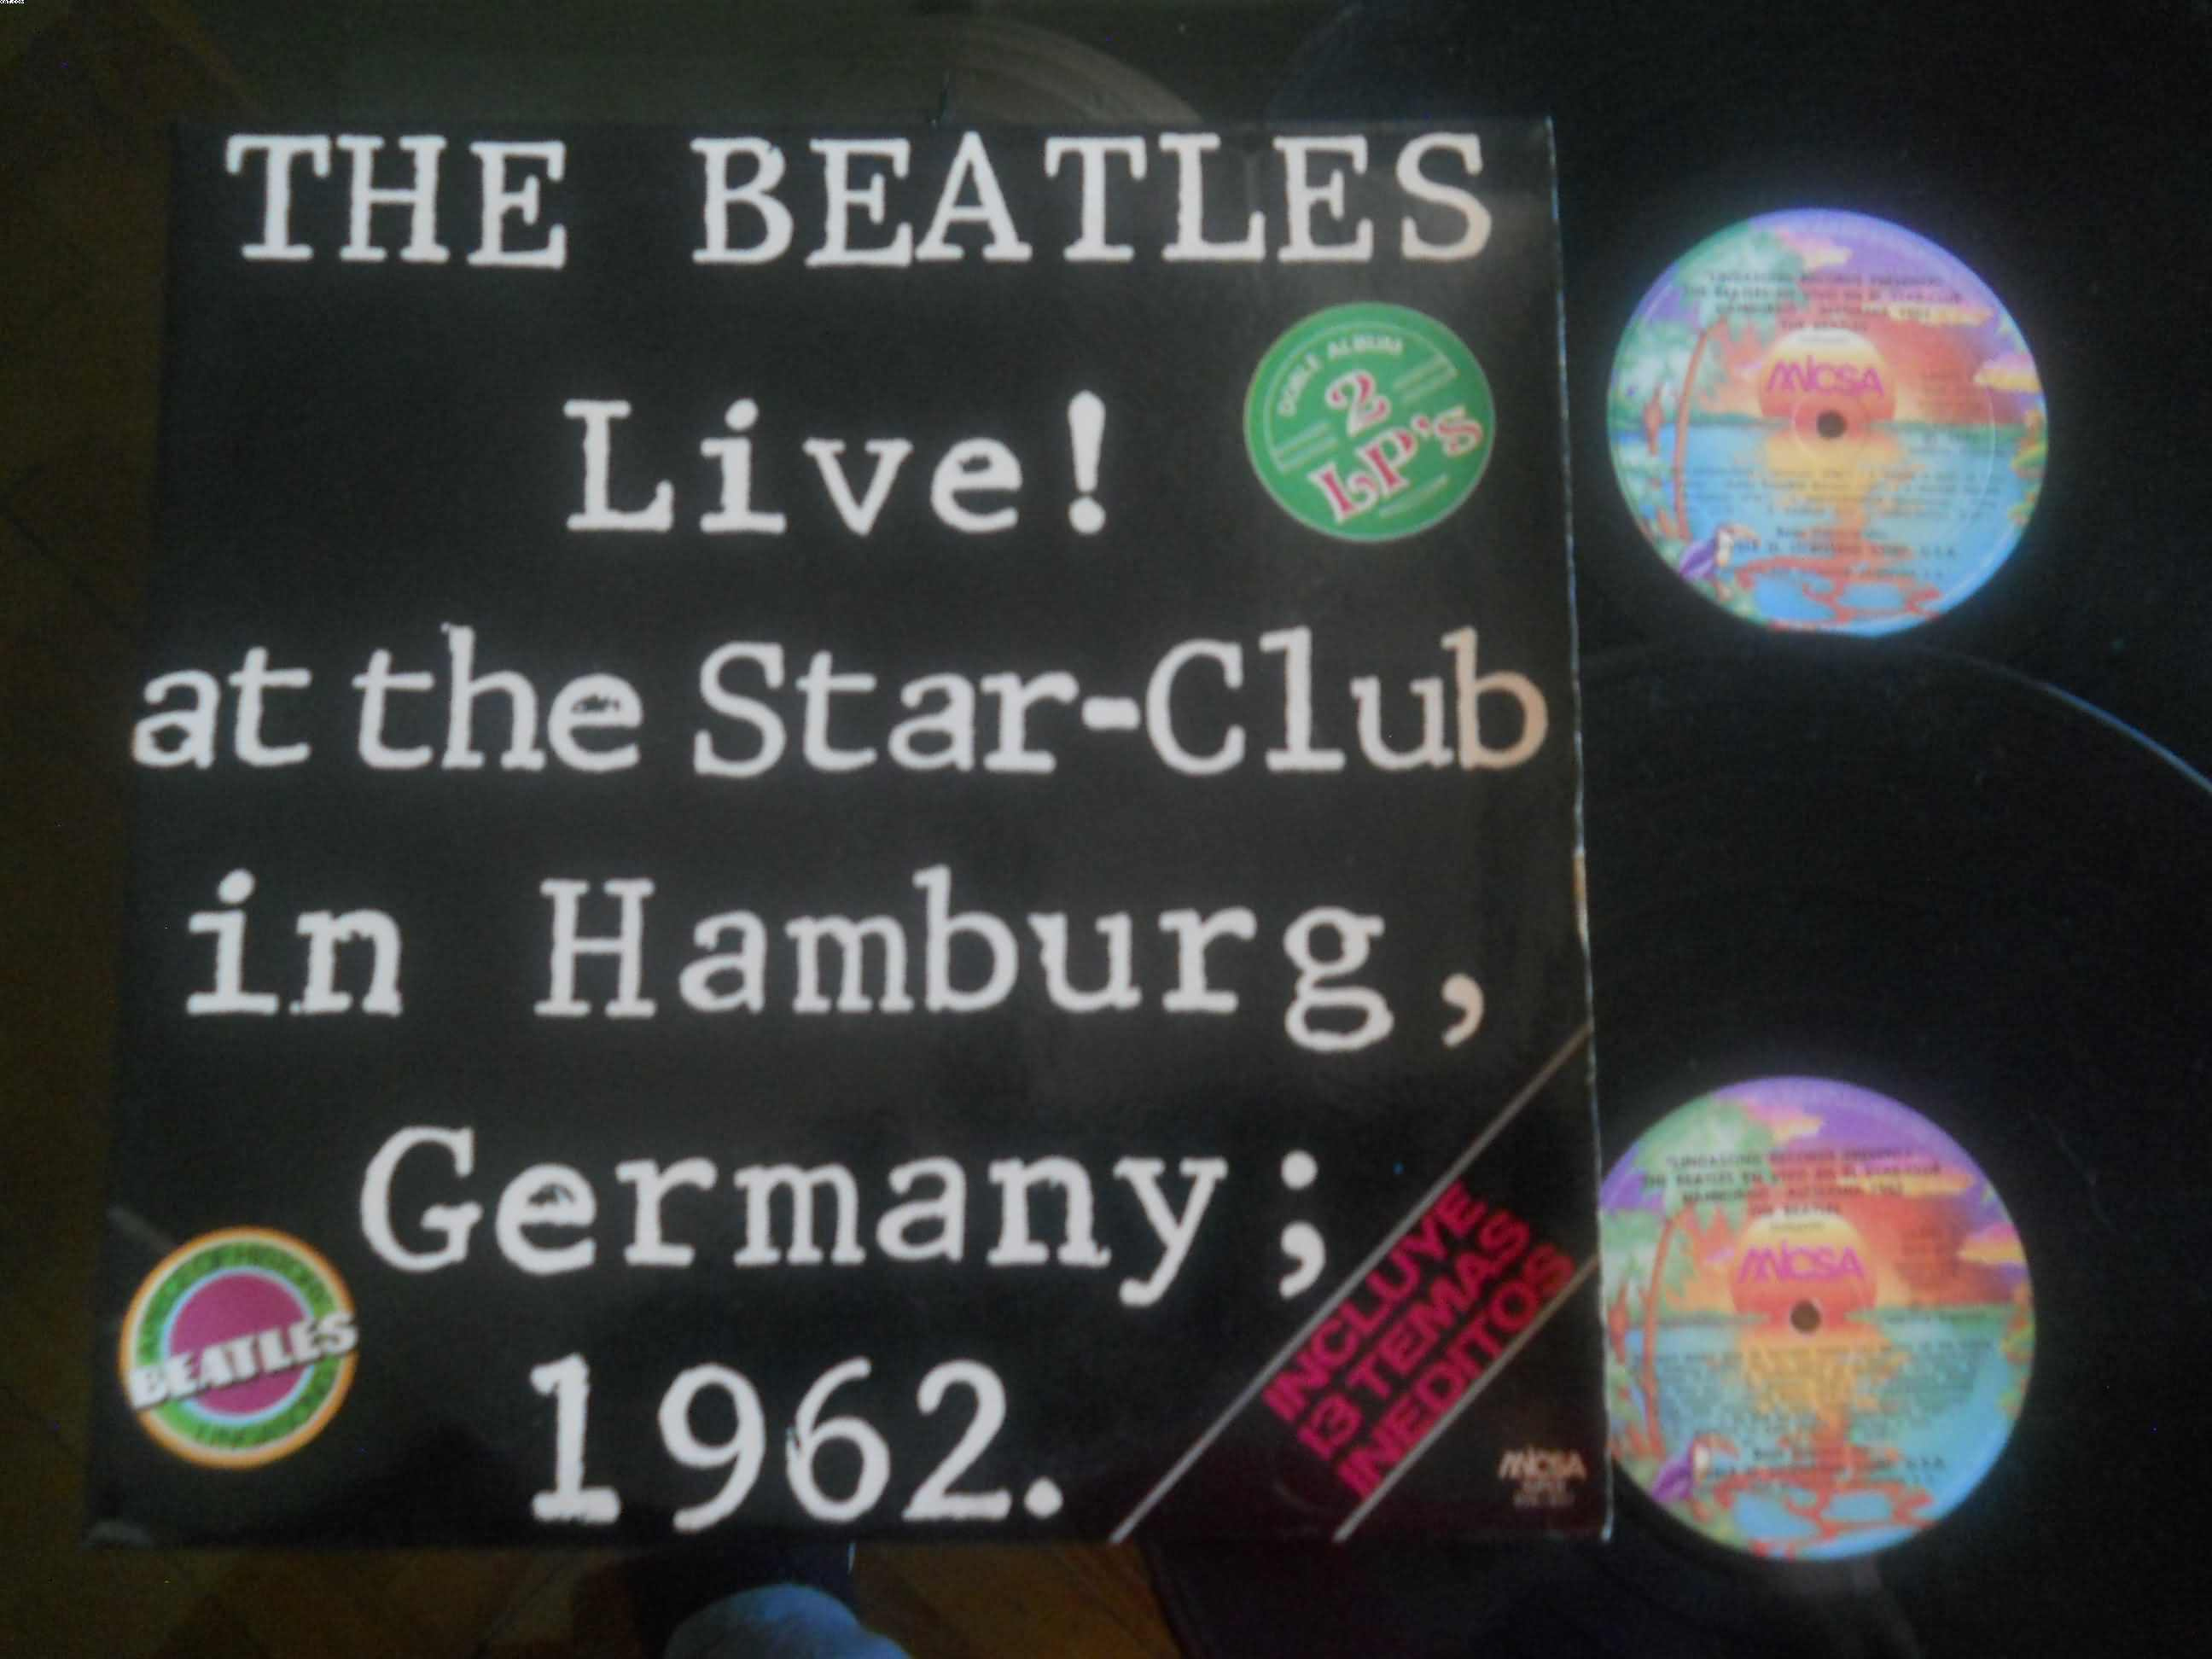 BEATLES - At The Star-club 1962